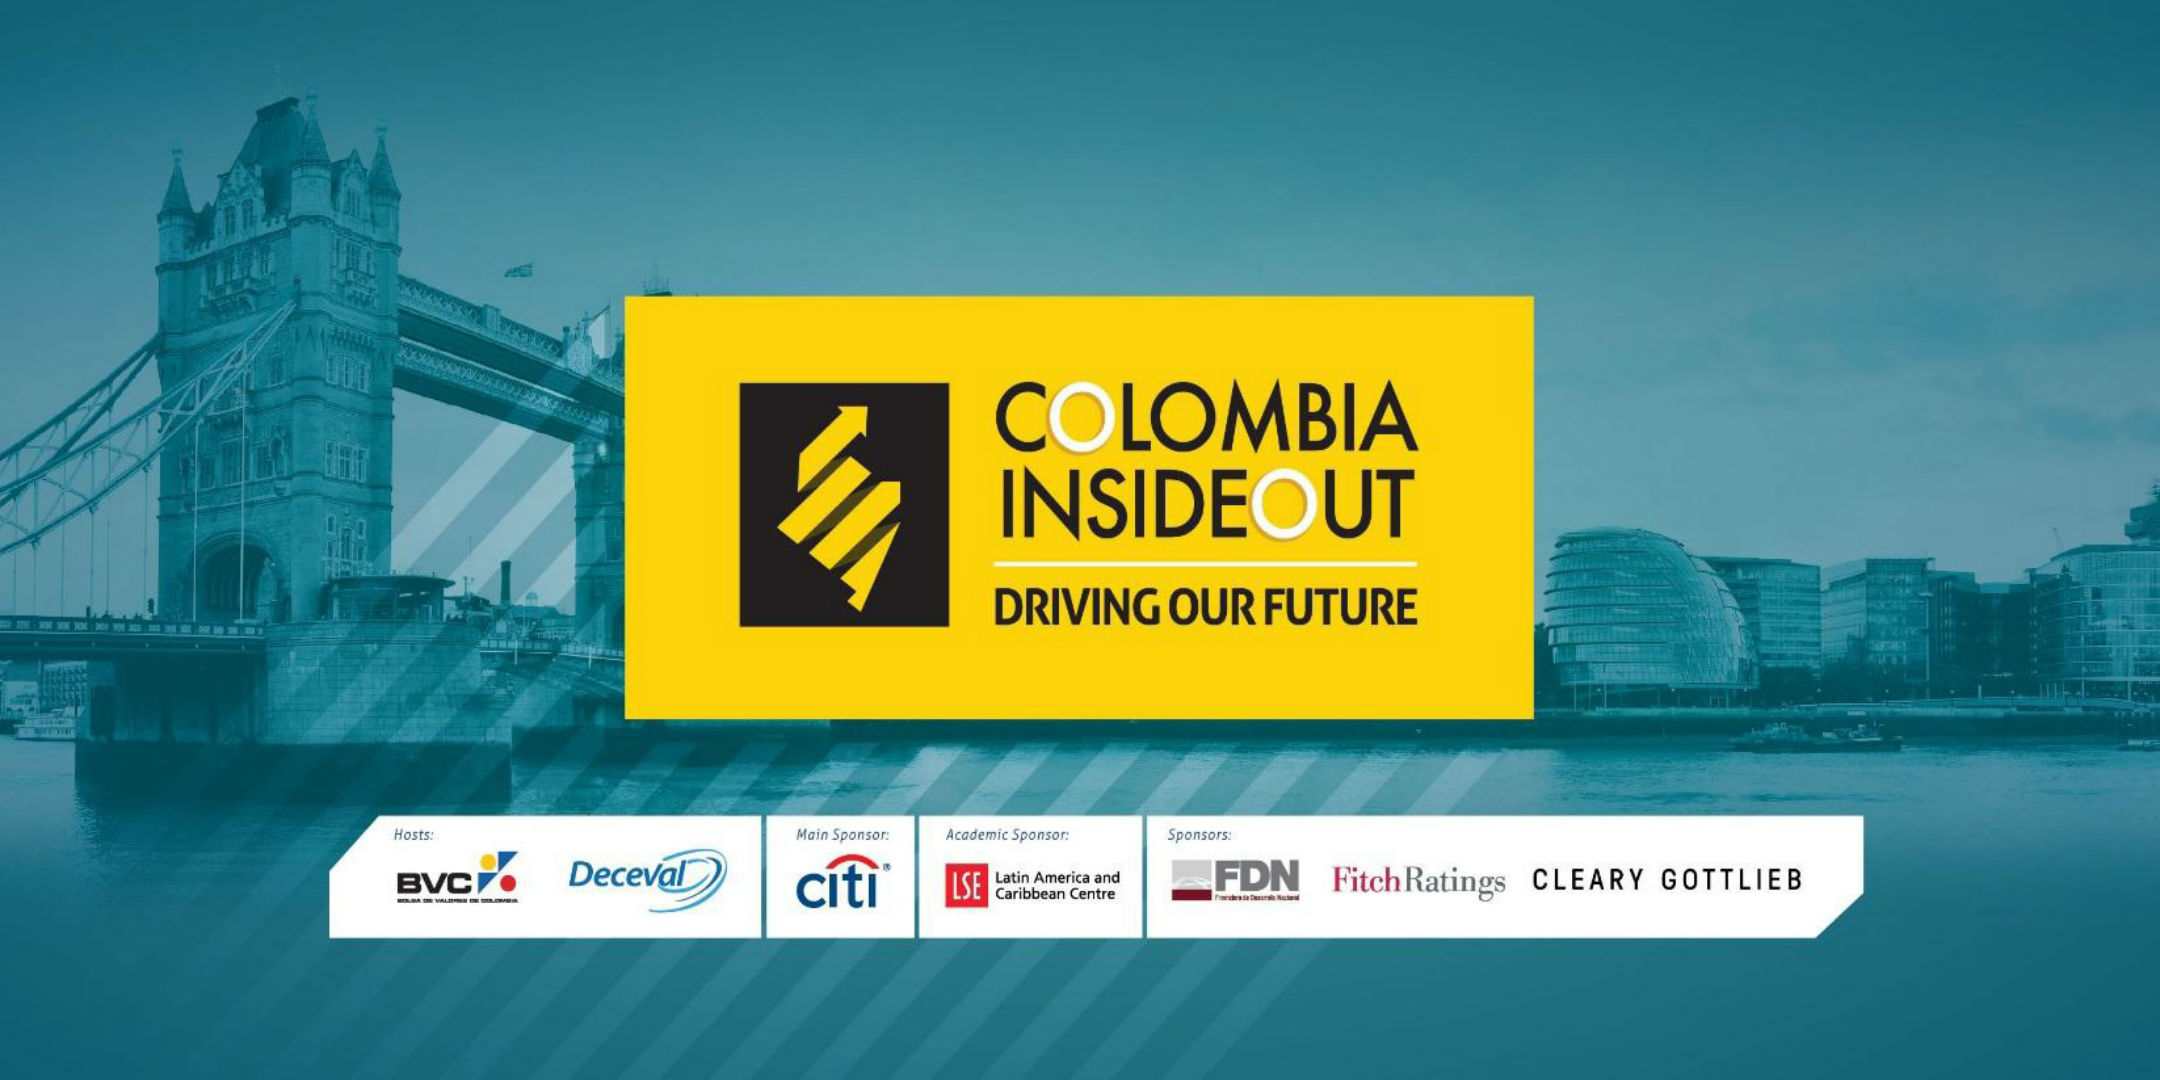 Colombia Insideout Conference 2017